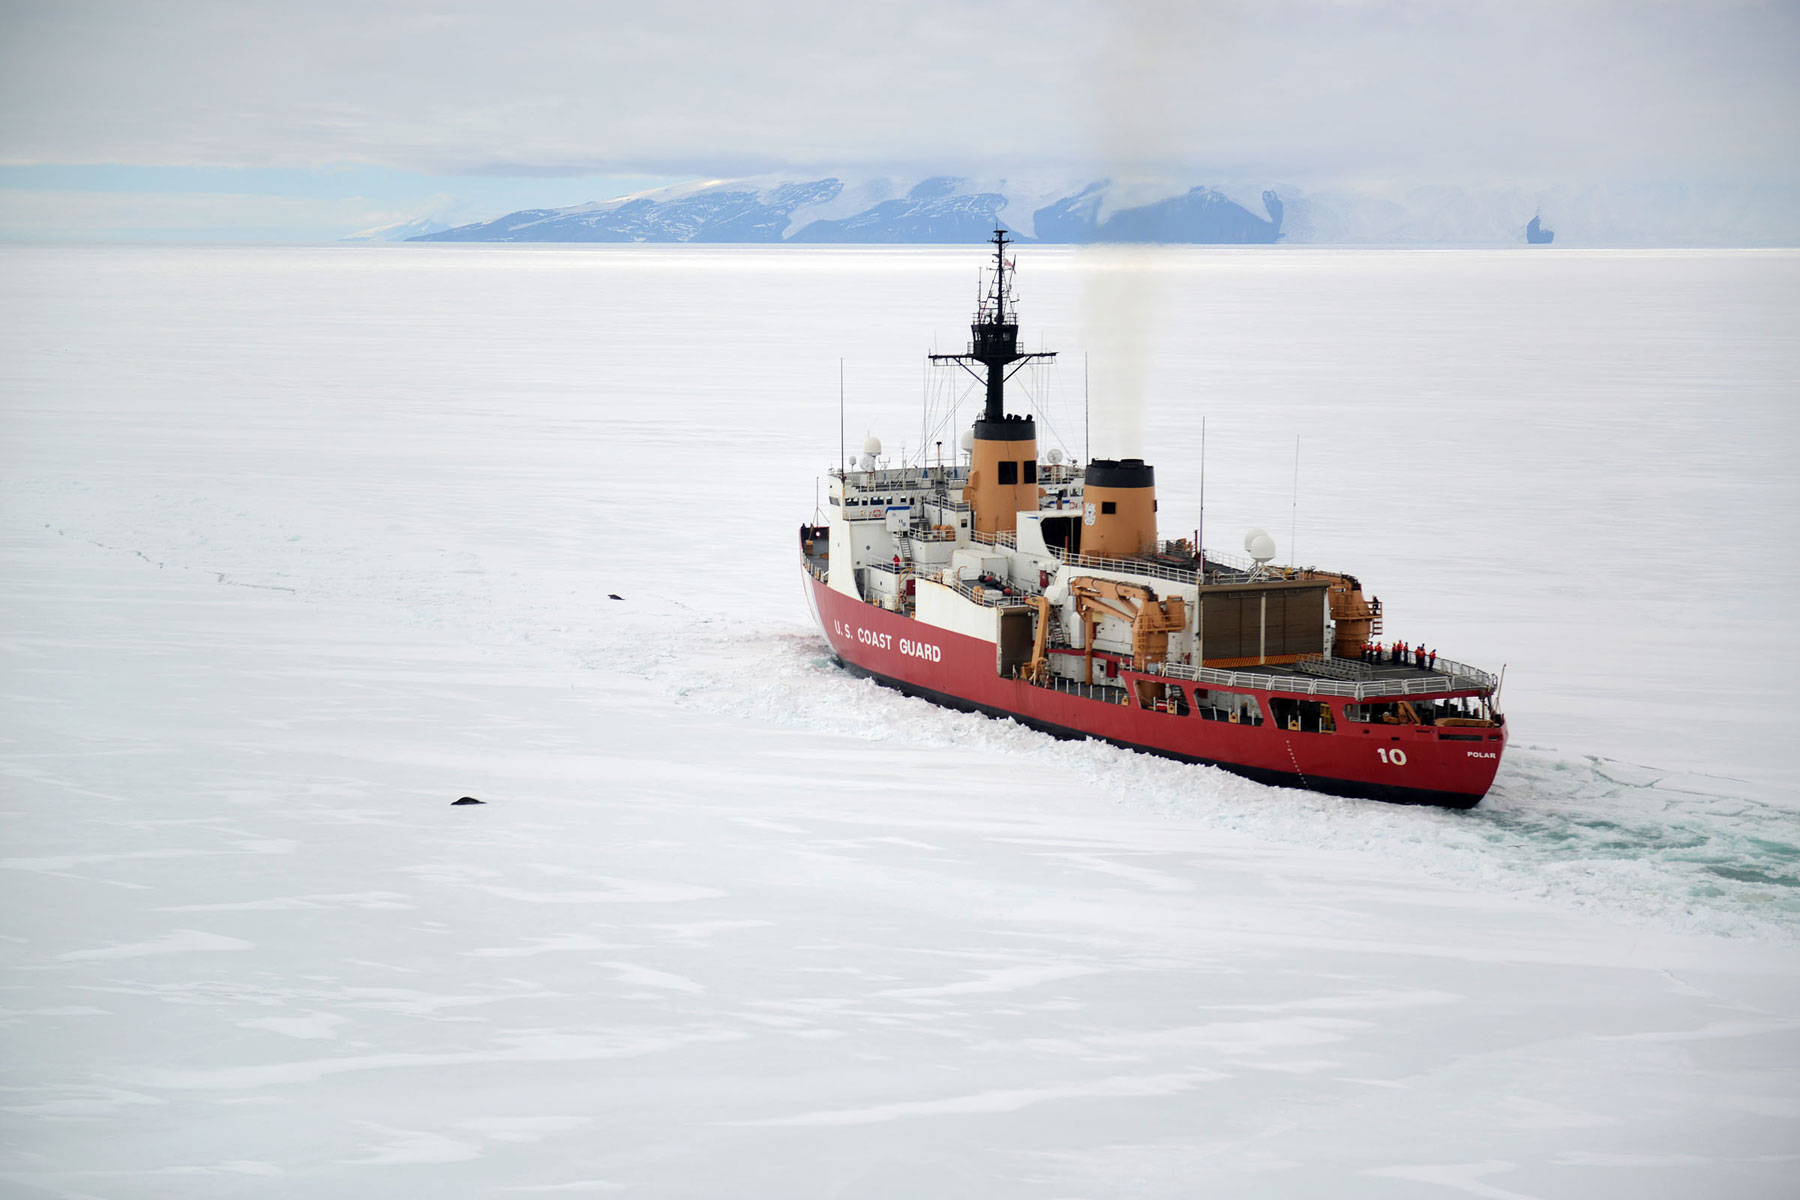 Coast Guard Budget Would Fund 1st New Heavy Icebreaker in 40 Years